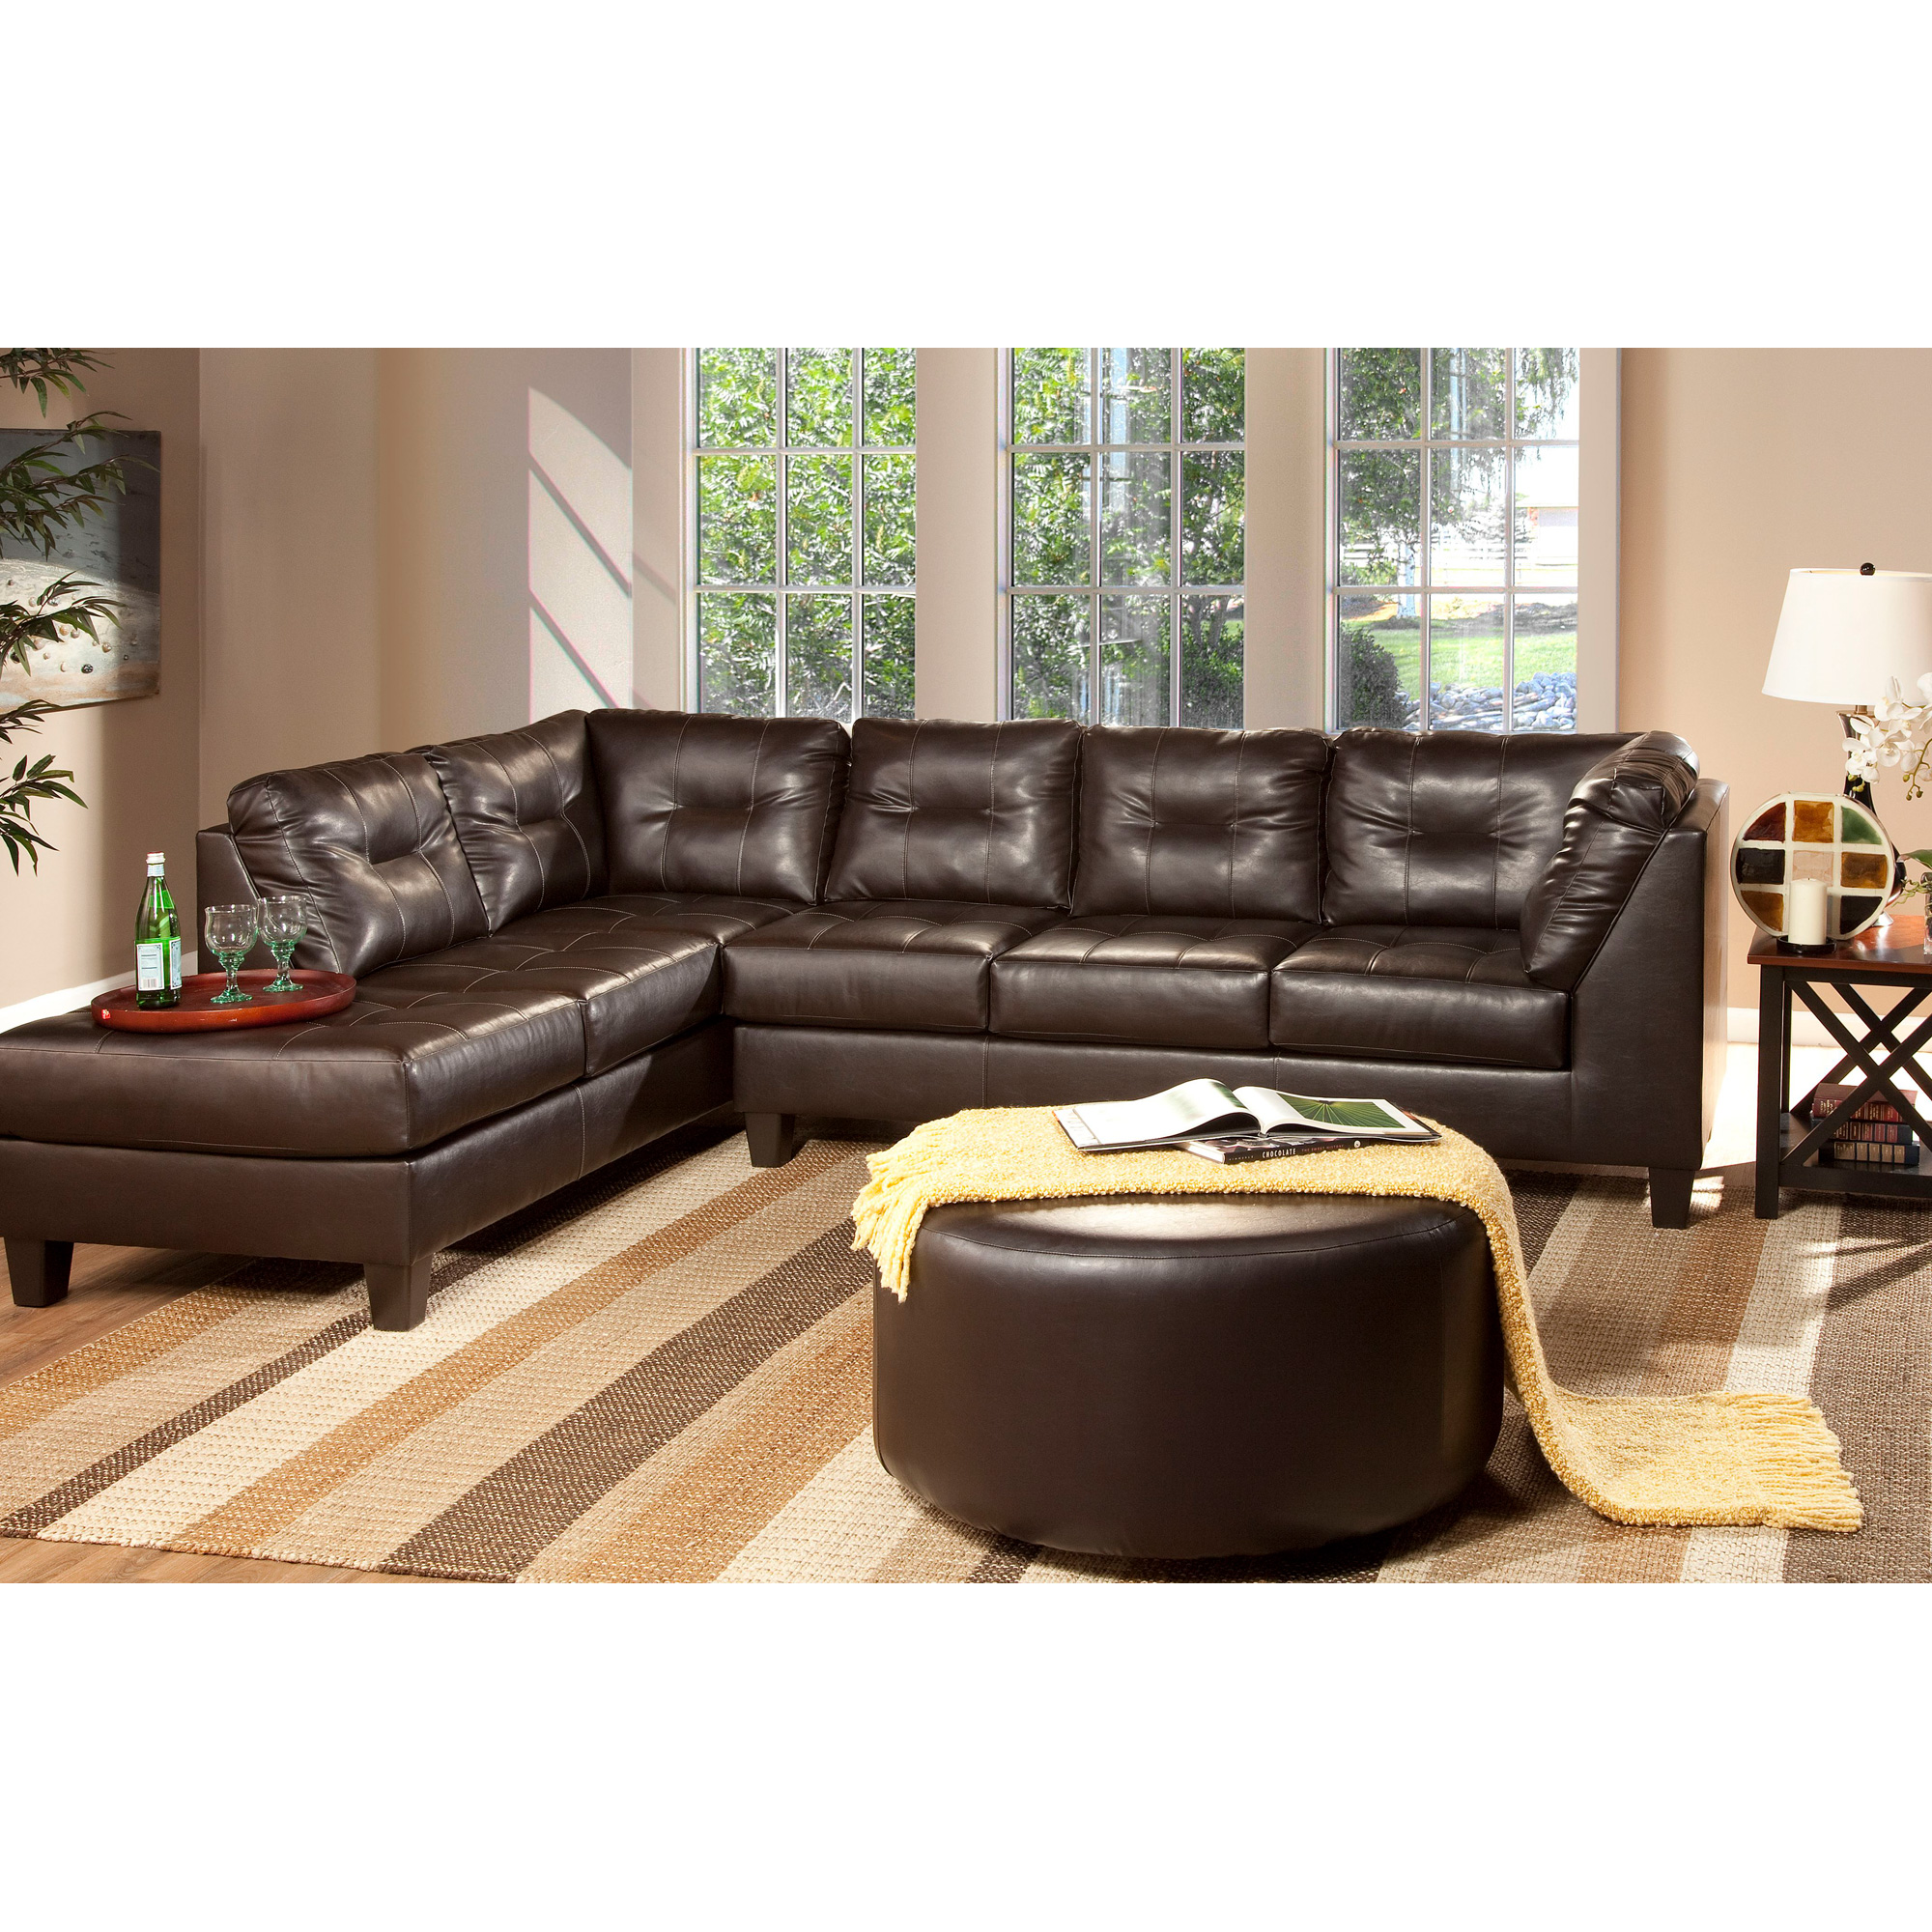 Serta Upholstery By Hughes Furniture | Broset San Marino Chocolate Left Chaise Sofa